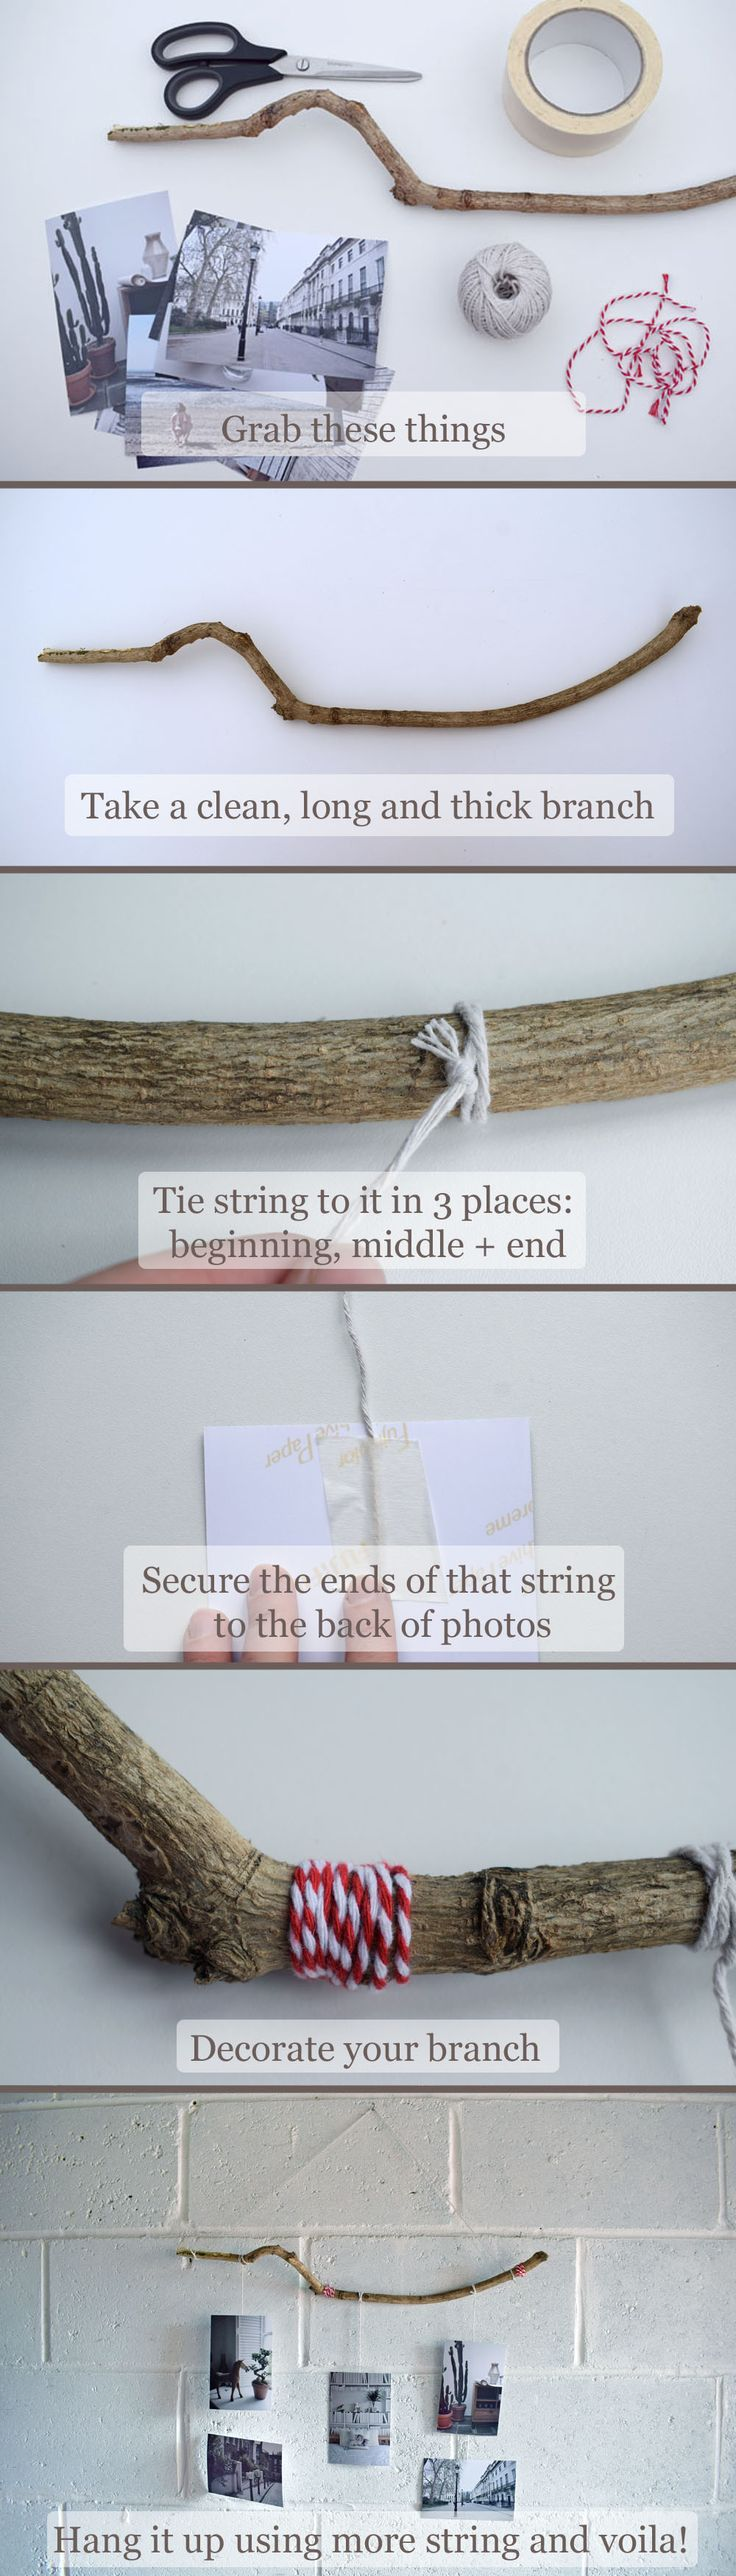 DIY branch photo holder and hanger in easy steps. Video guide on The Fairytale Pretty Picture blog plus £80 giveaway for photography prints or canvas.